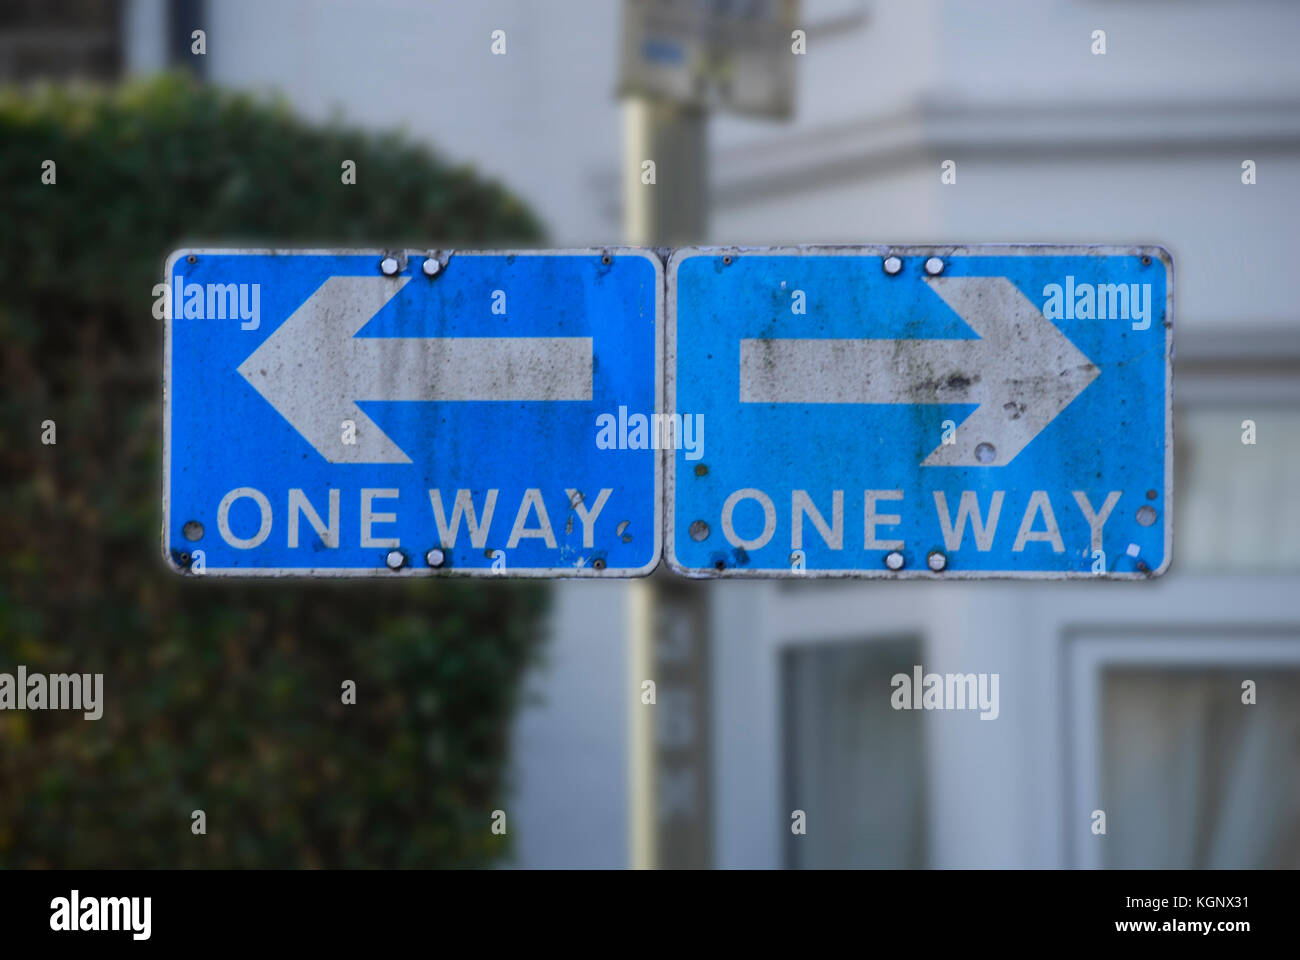 Confusing traffic sign with 'one way' pointing in two directions - Stock Image